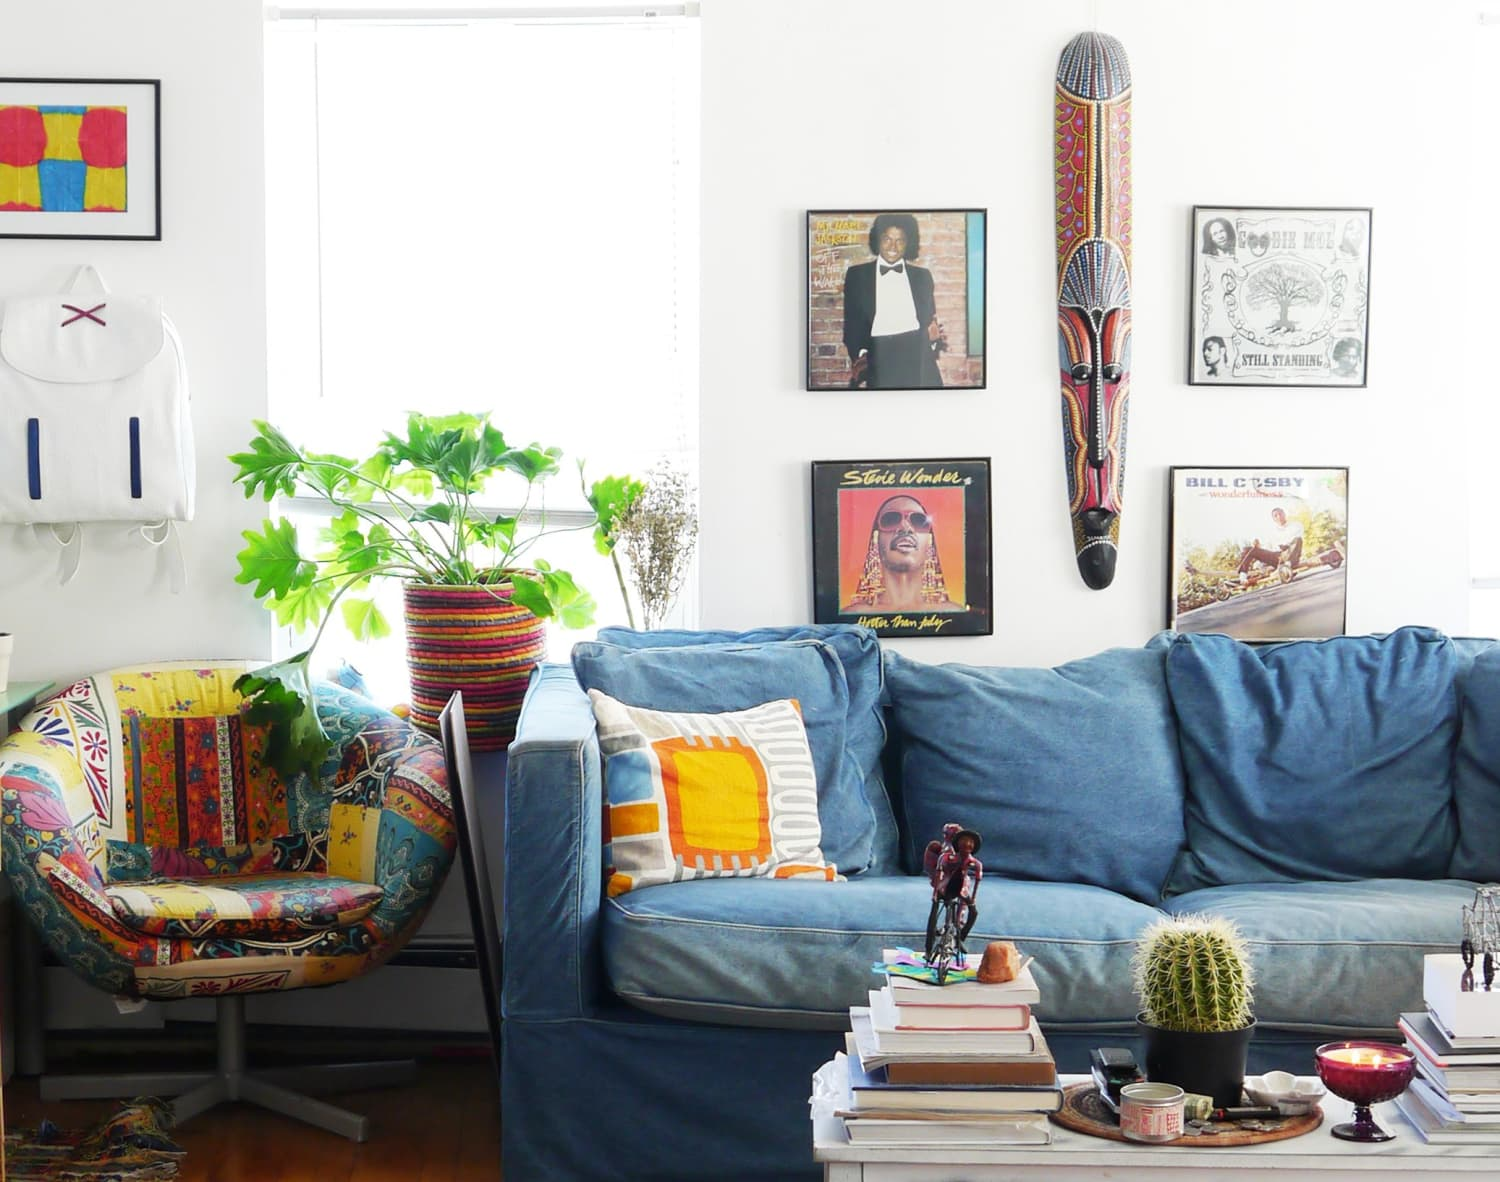 Urban Outfitters' Latest Home Sale Is the Perfect Opportunity to Add Some Good Vibes to Your Space